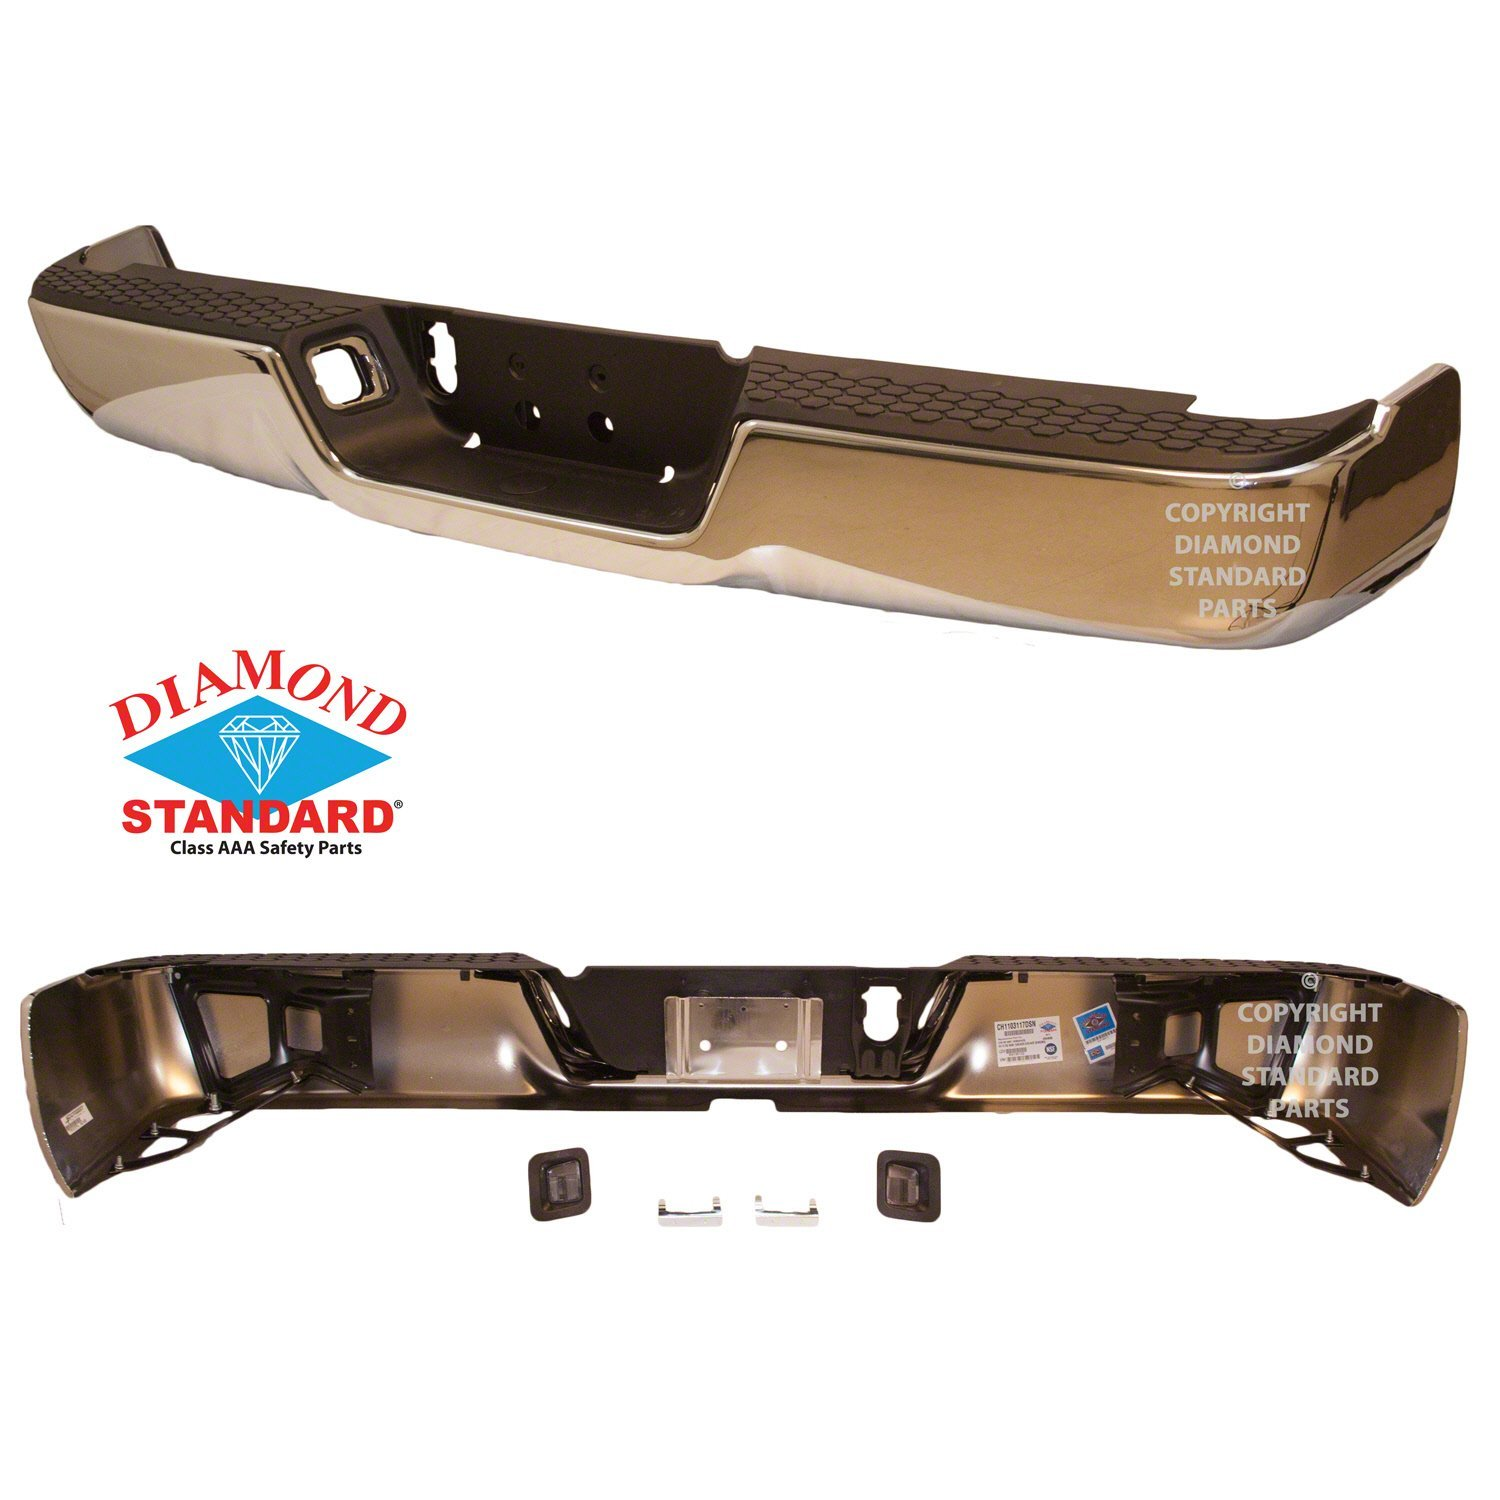 Crash Parts Plus CAPA CH1103117 Rear Bumper Assembly for Dodge Ram, Ram 1500, 2500, 3500, New Six